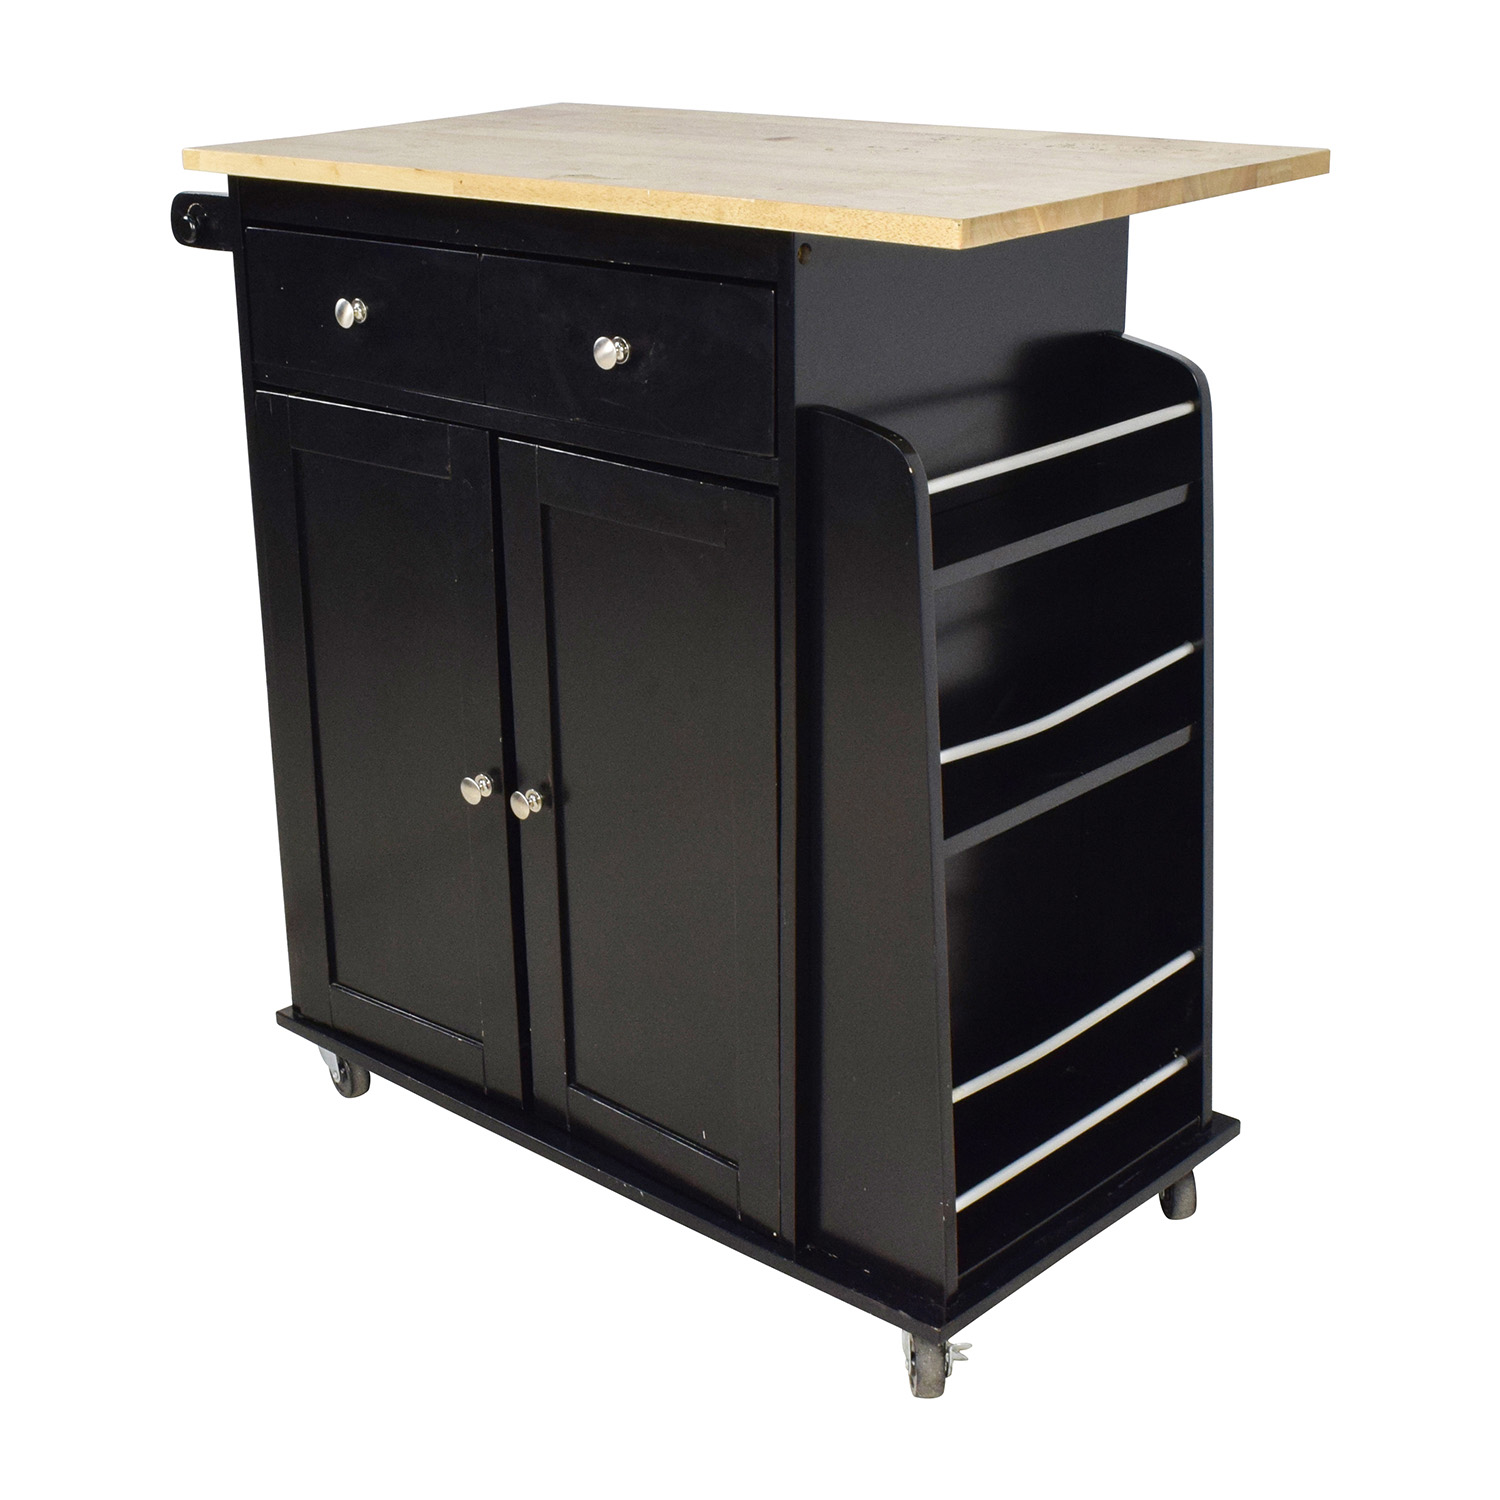 74 Off Kmart Large Kitchen Cabinet With Butcher Block